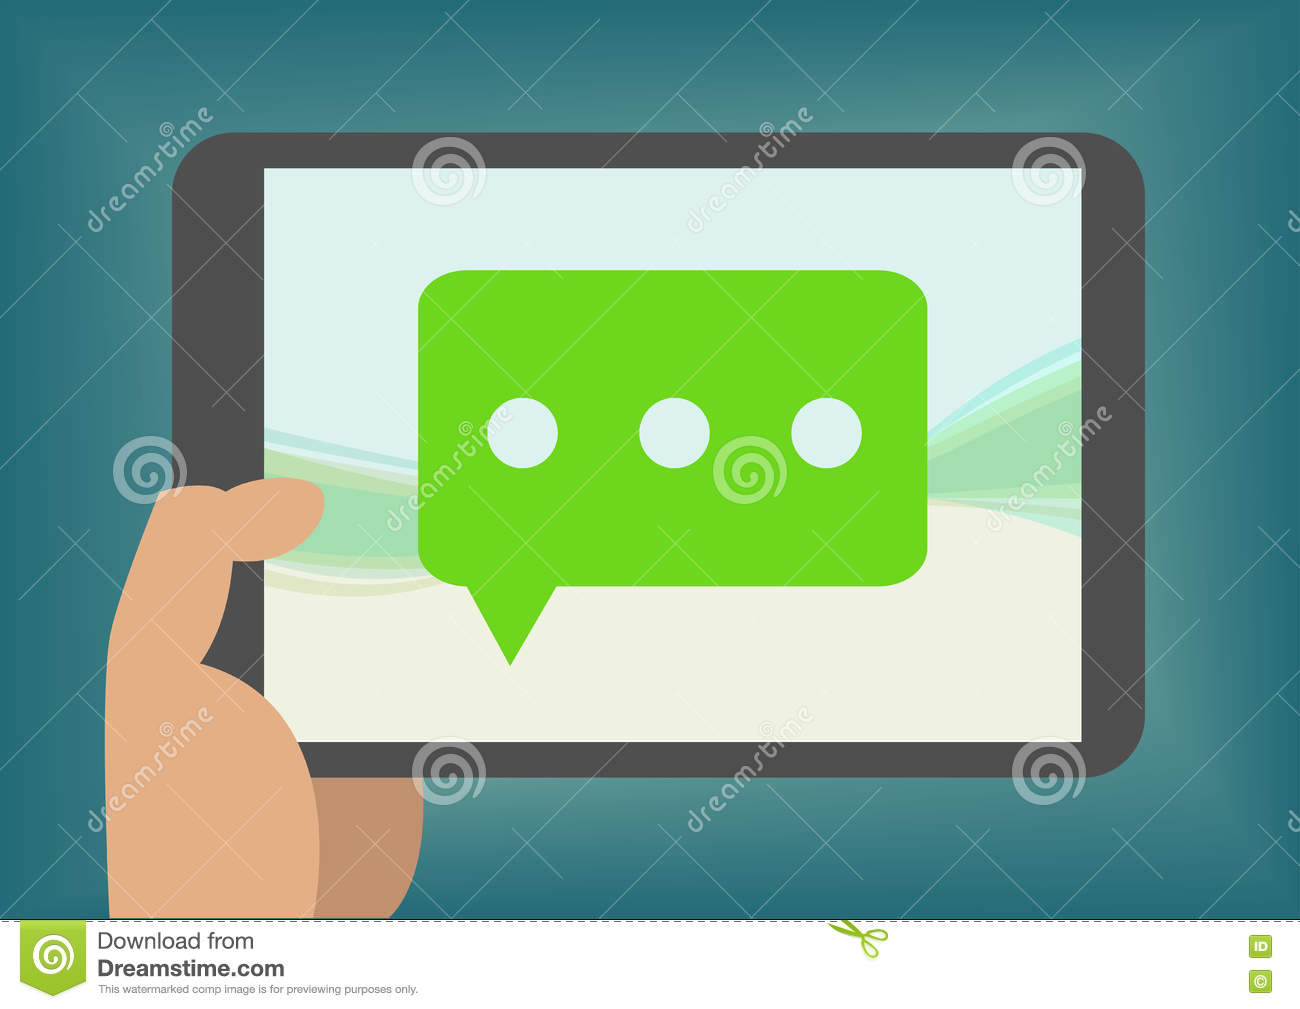 Instant Message Cartoon : Communication instant messaging chatting talking concept